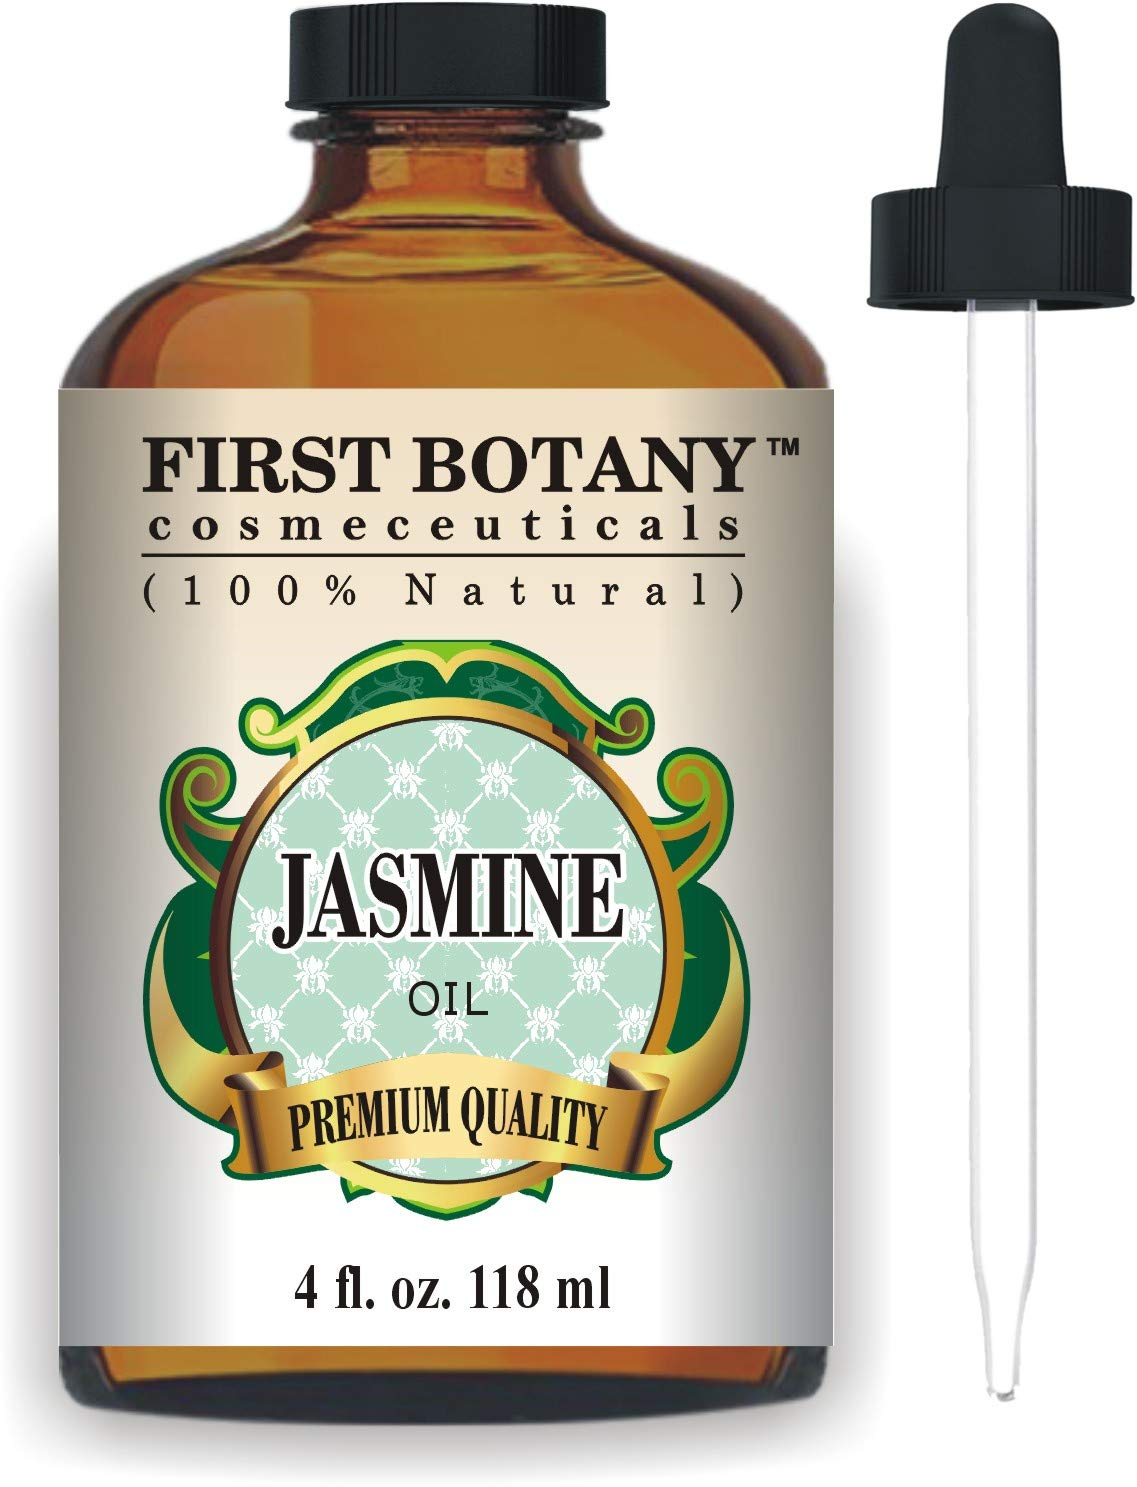 Jasmine Oil 4 fl. oz. with a Glass Dropper - Premium Quality & Therapeutic Grade - Ideal for Aromatherapy & Maintaining Healthy Skin by First Botany Cosmeceuticals